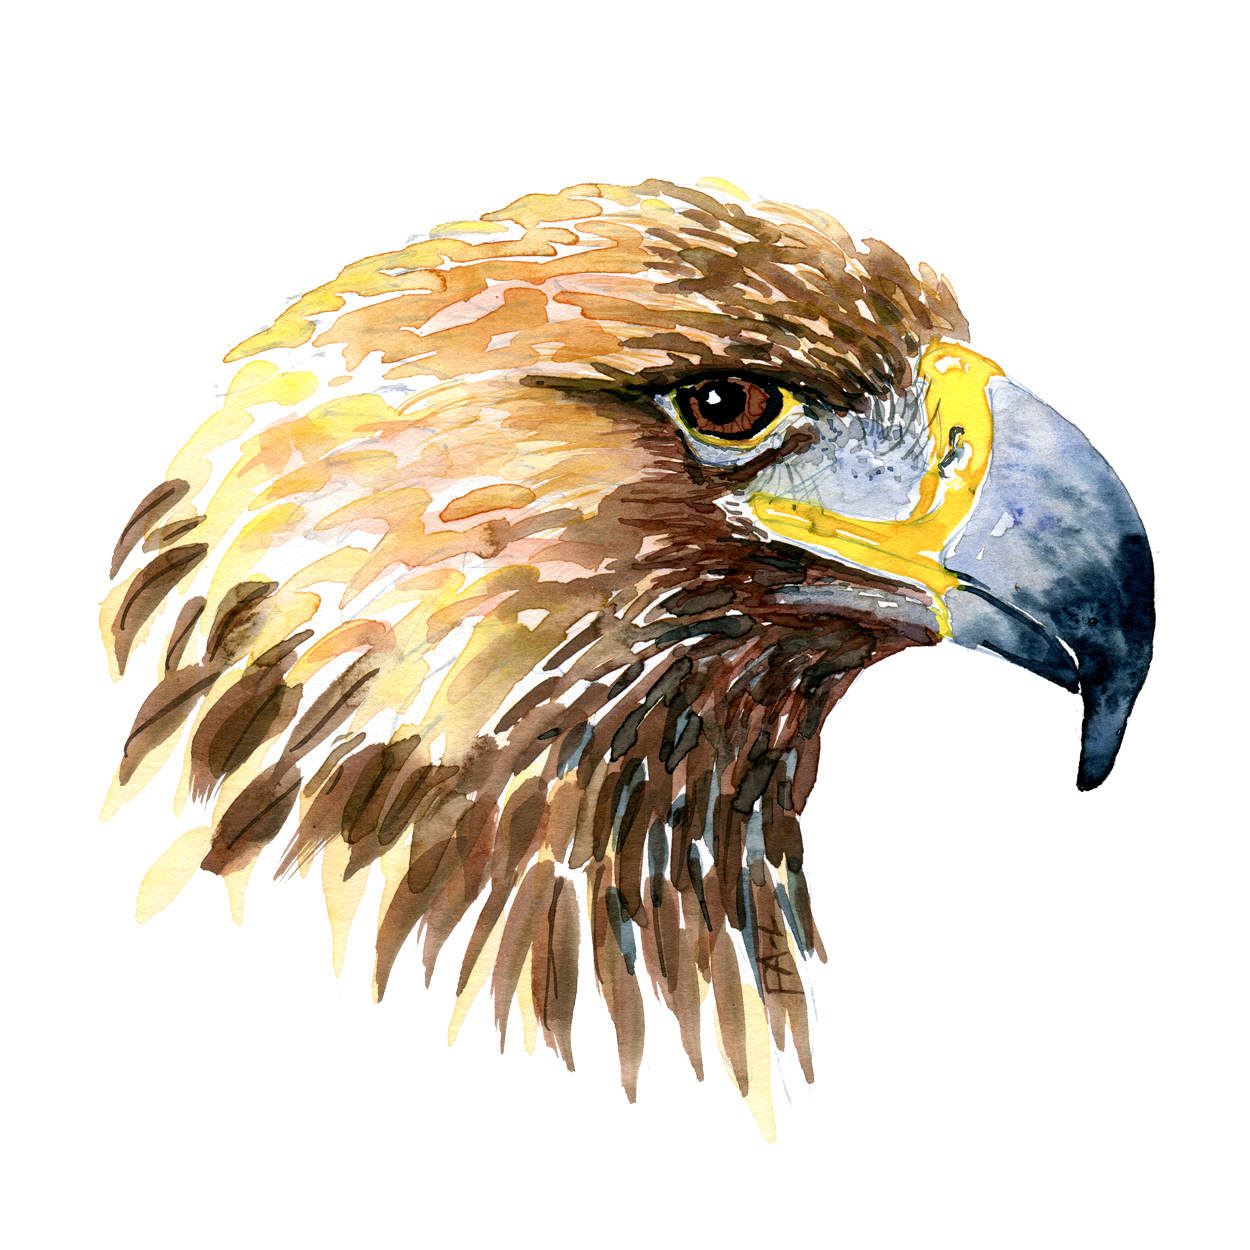 Watercolor painting of an eagle head